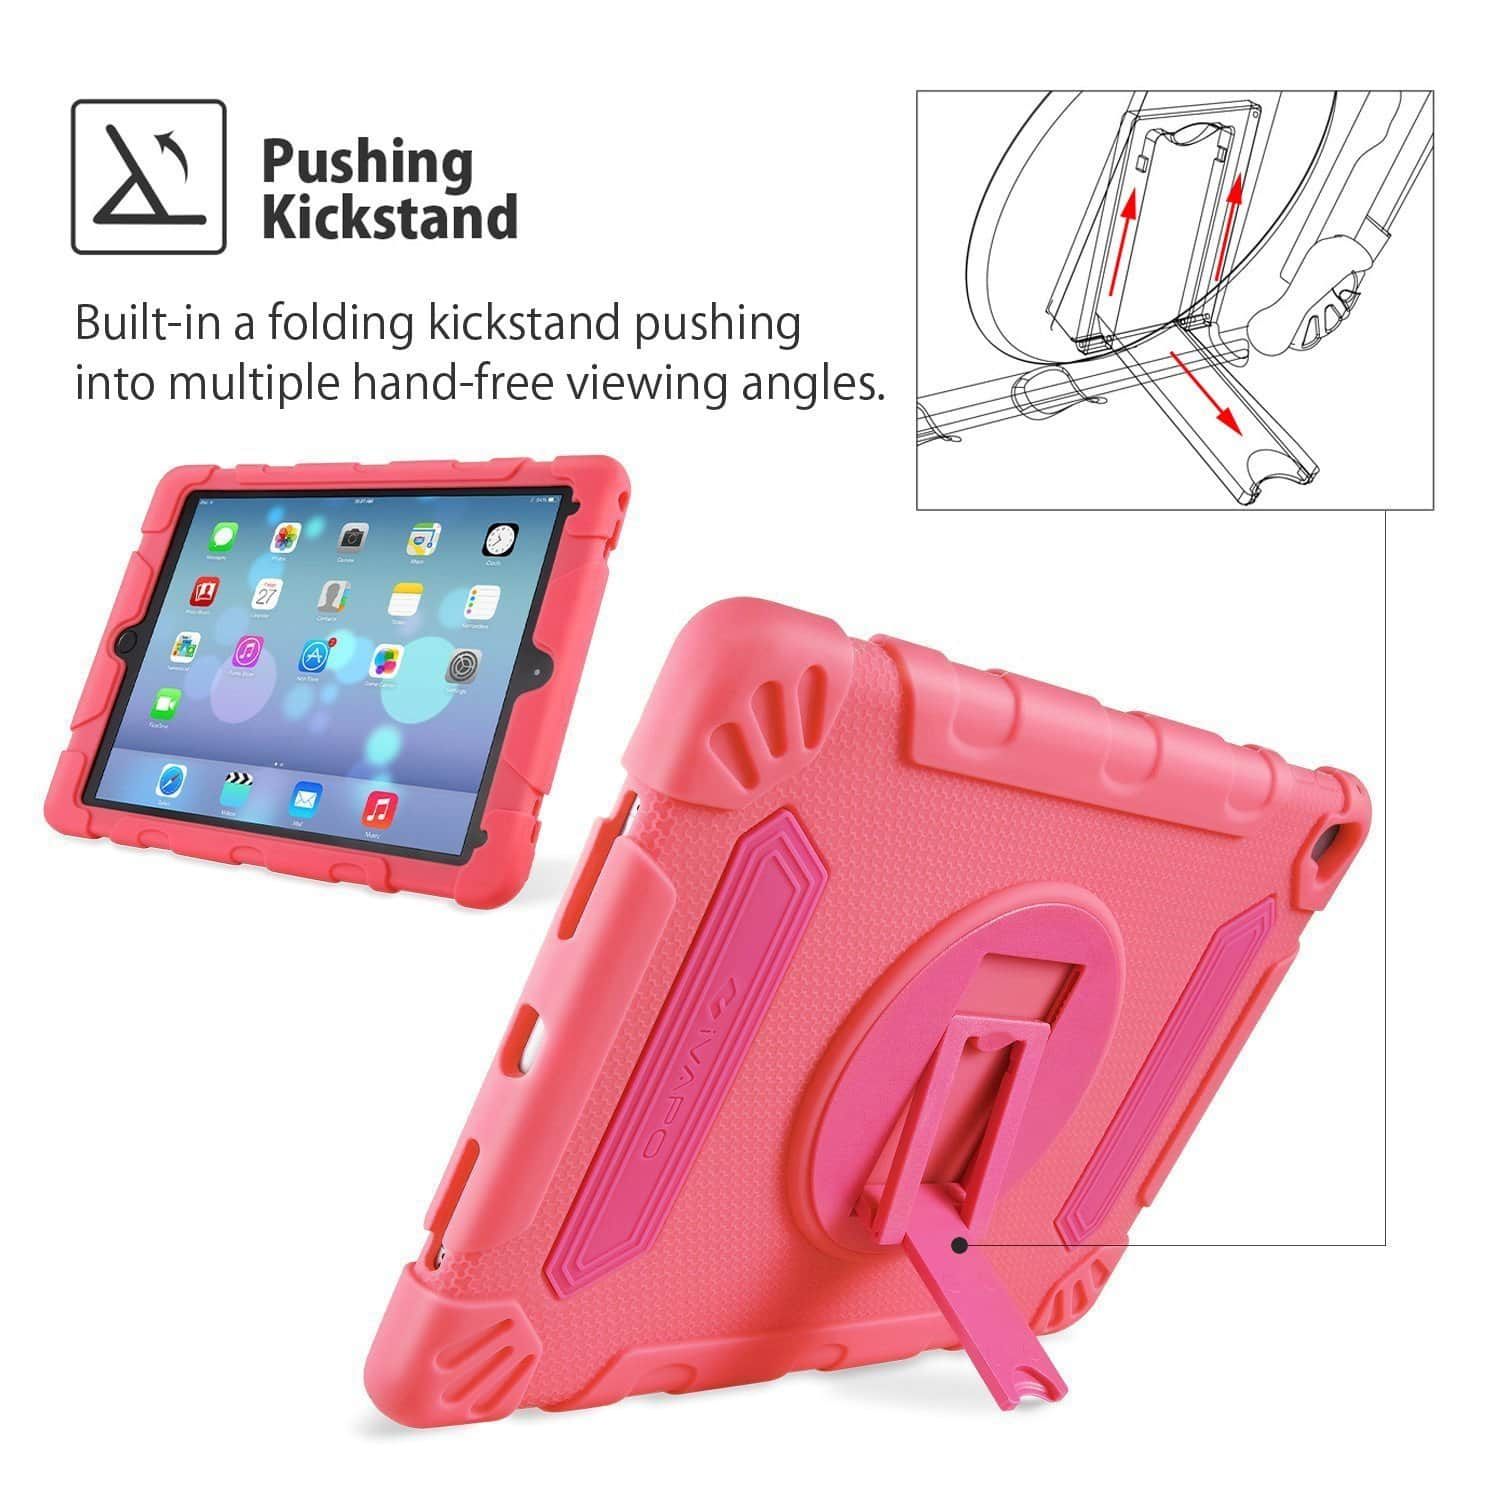 Up to 65% Off iPad Pro 9.7 inch Protective Case/iPad Mini 4 Black Case Coupon $6.99